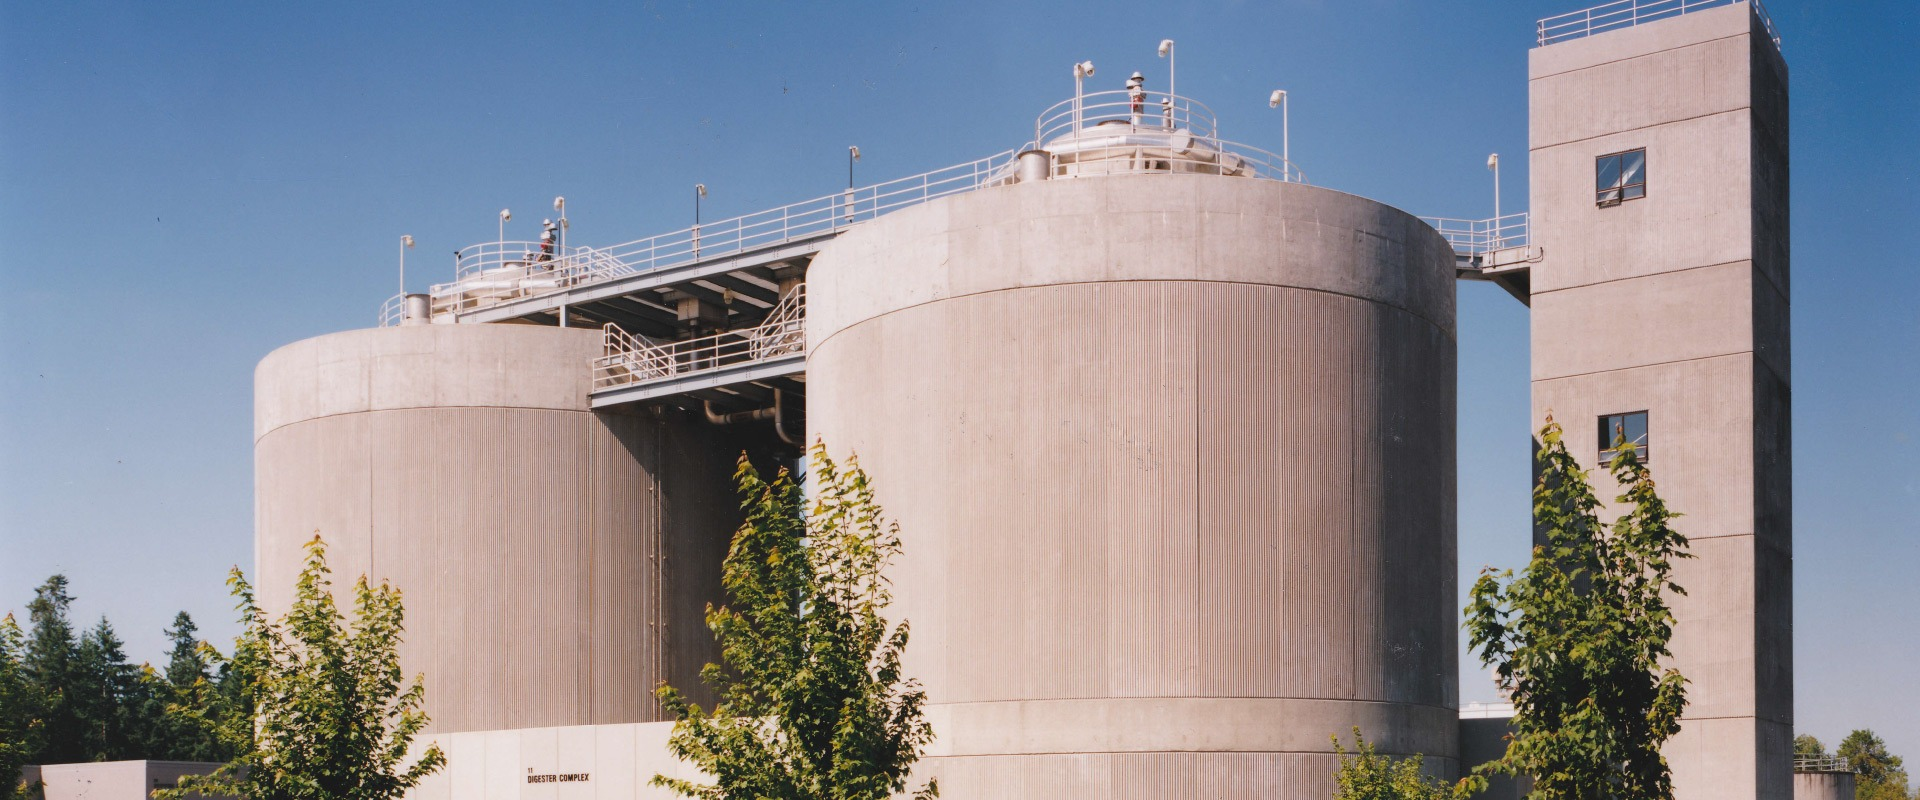 concrete digesters in Hillsboro, OR